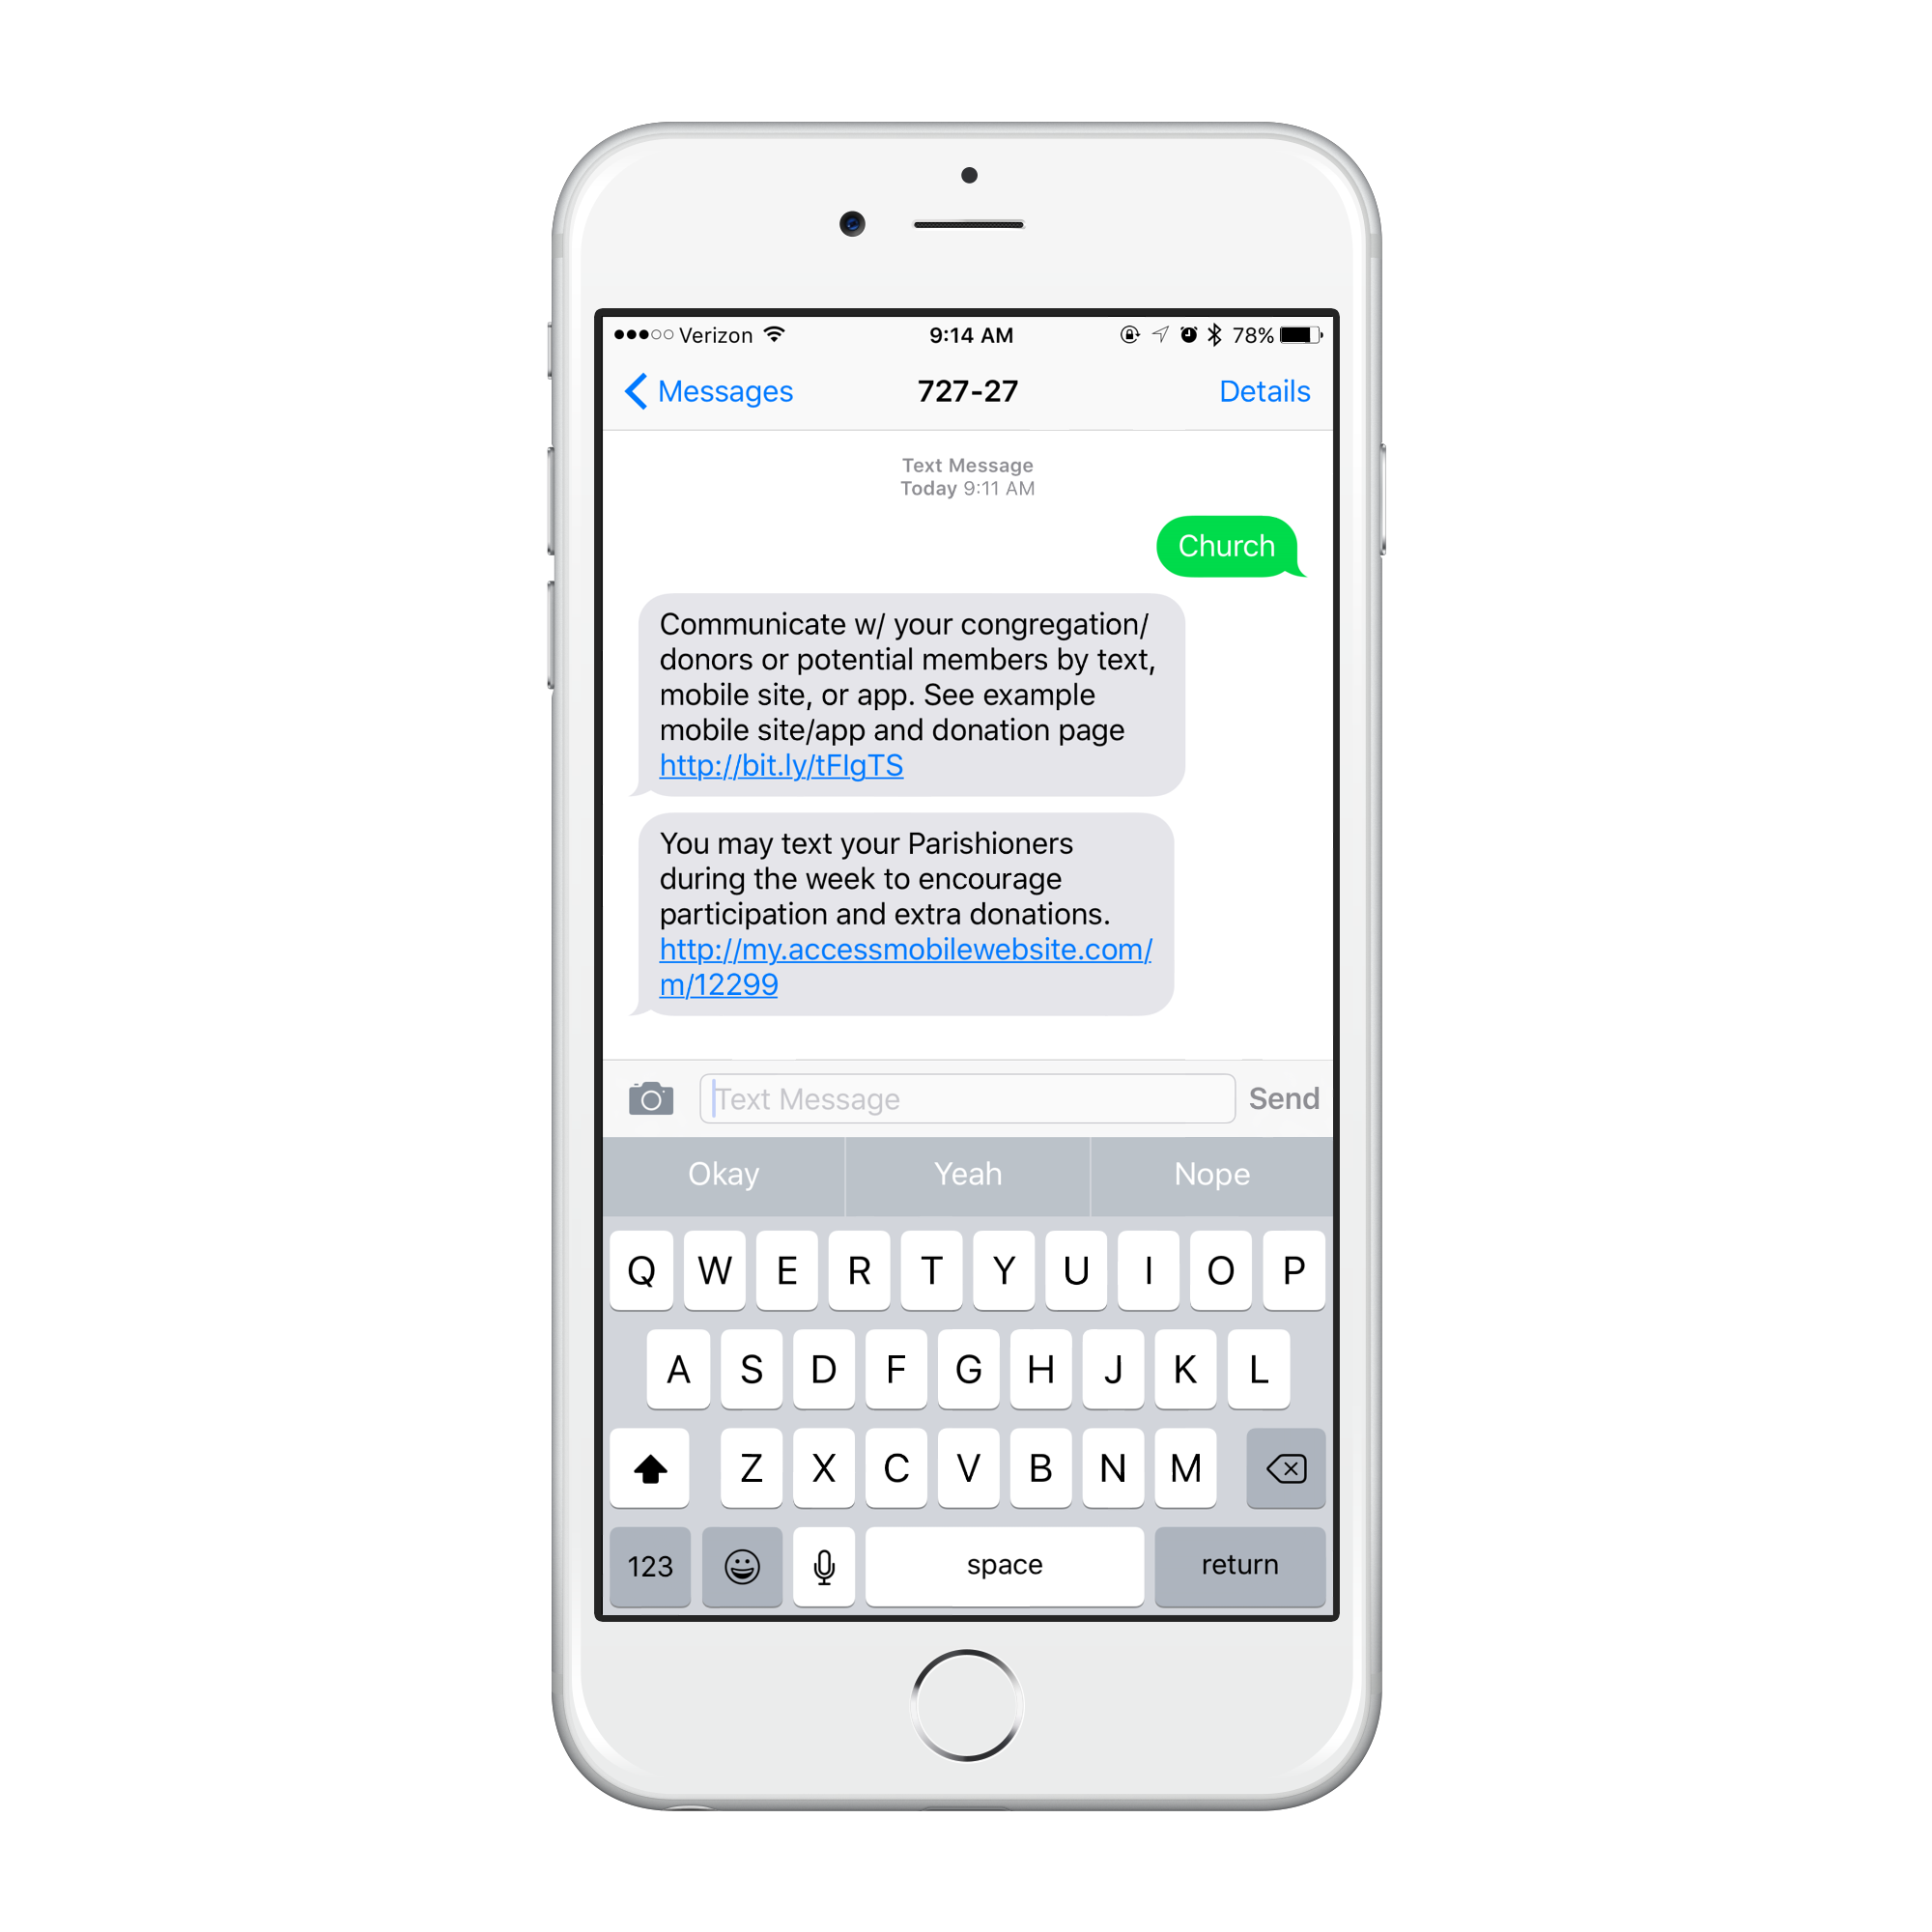 iPhone showing how a church member would opt into the church's Text Message Marketing programs.